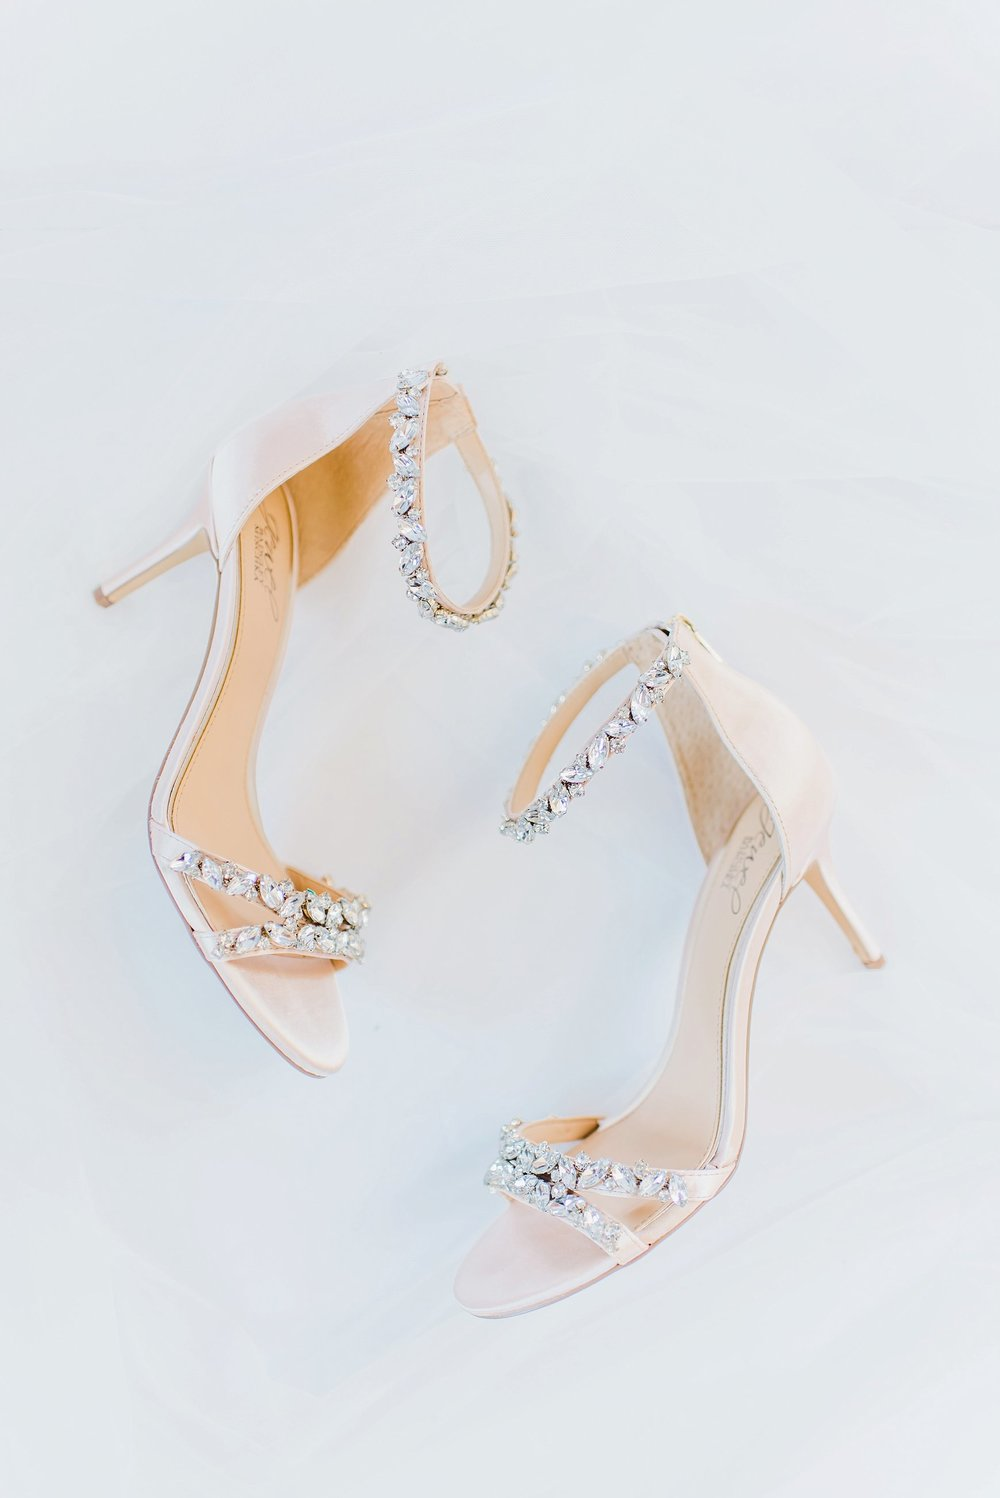 I loved Kaylea's choice in  Badgley Mischka  bridal shoes!